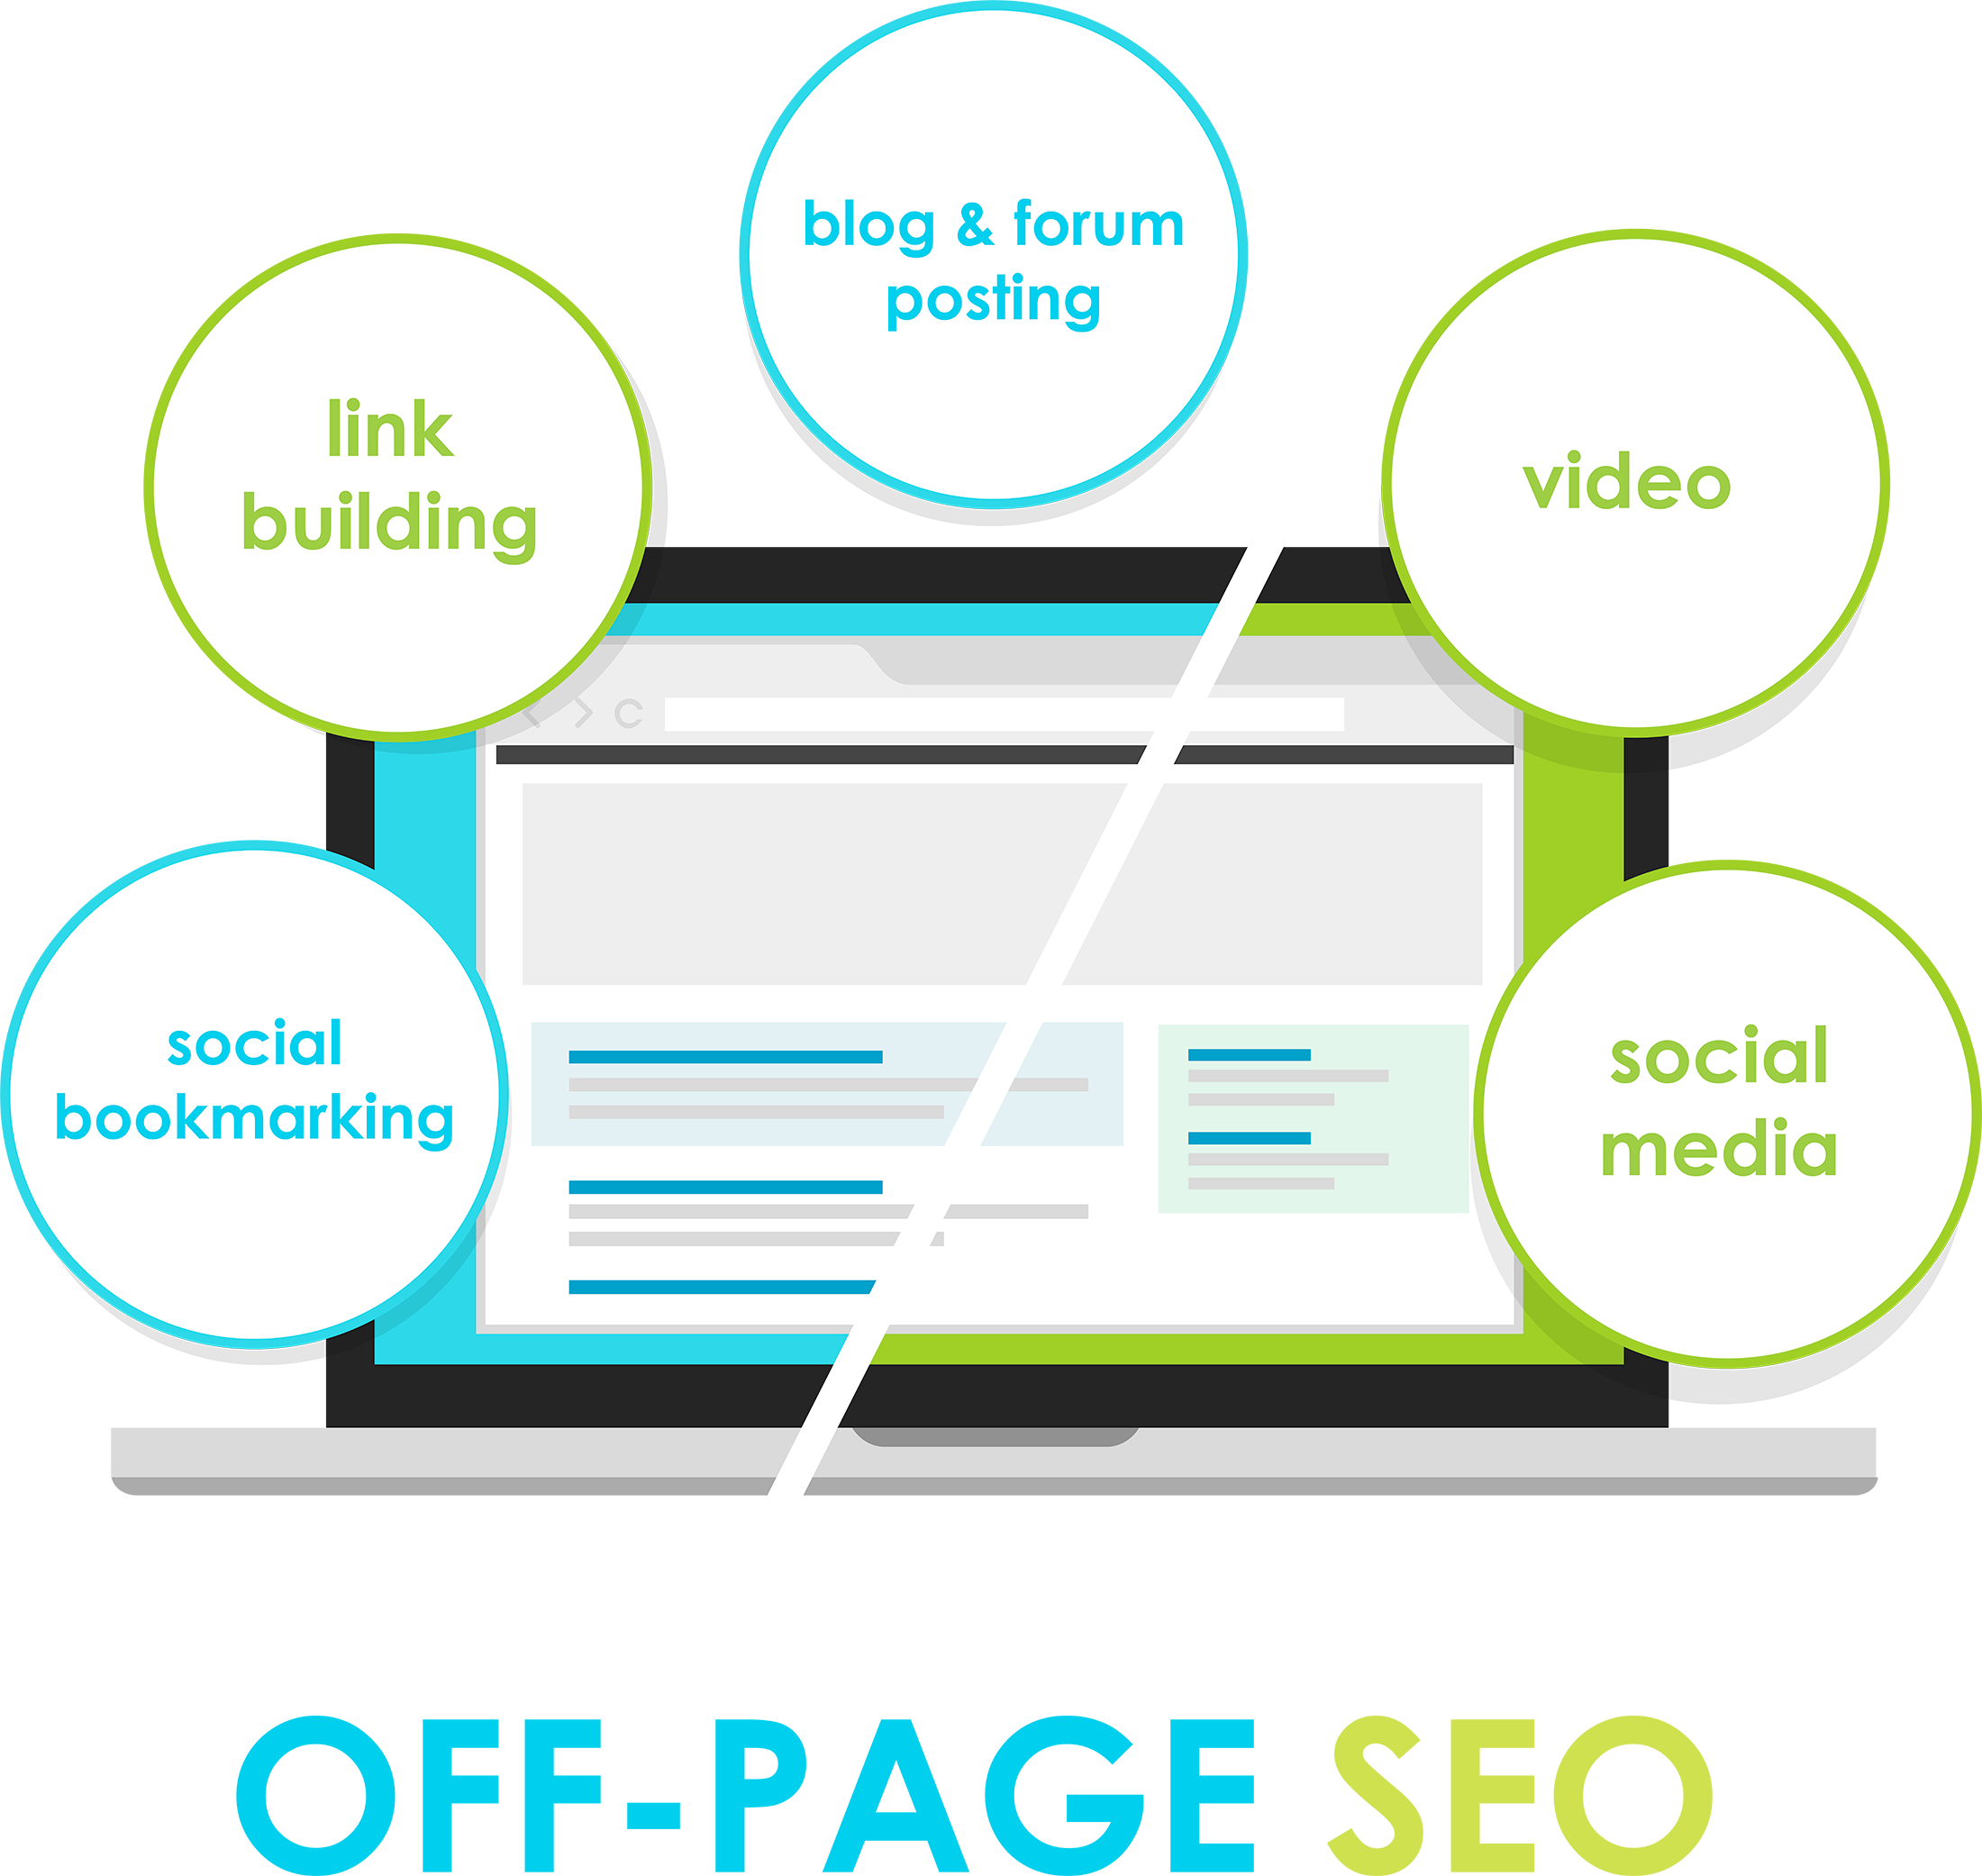 Off-page seo: social bookmarking, link building, blog & forum posting, video, social media. Grafikk